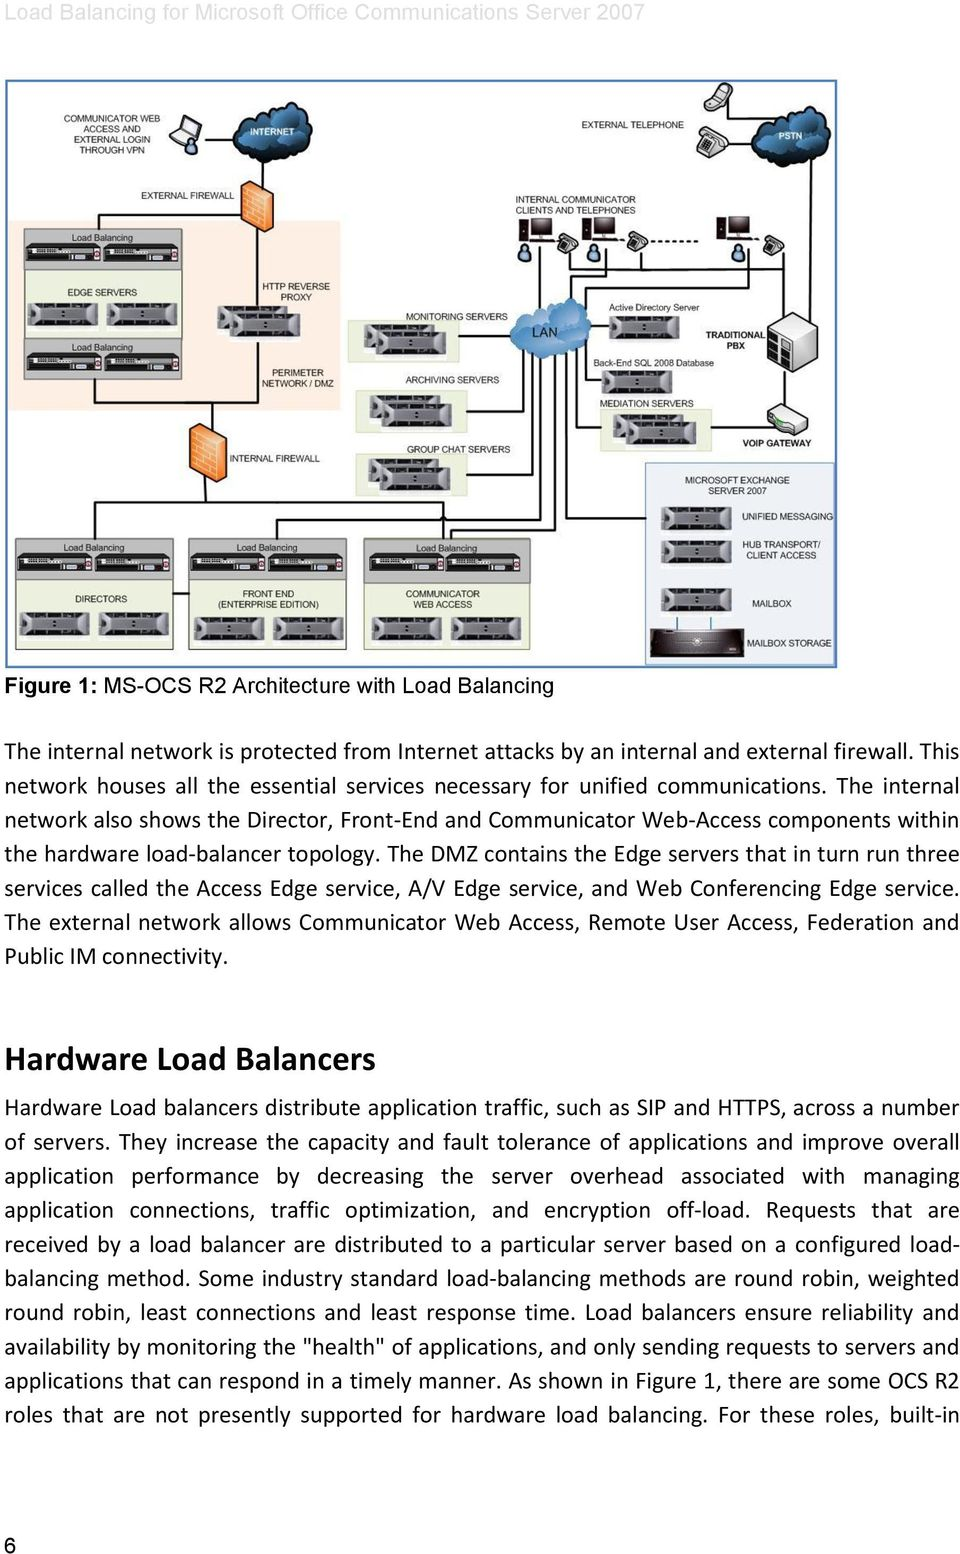 The internal network also shows the Director, Front-End and Communicator Web-Access components within the hardware load-balancer topology.